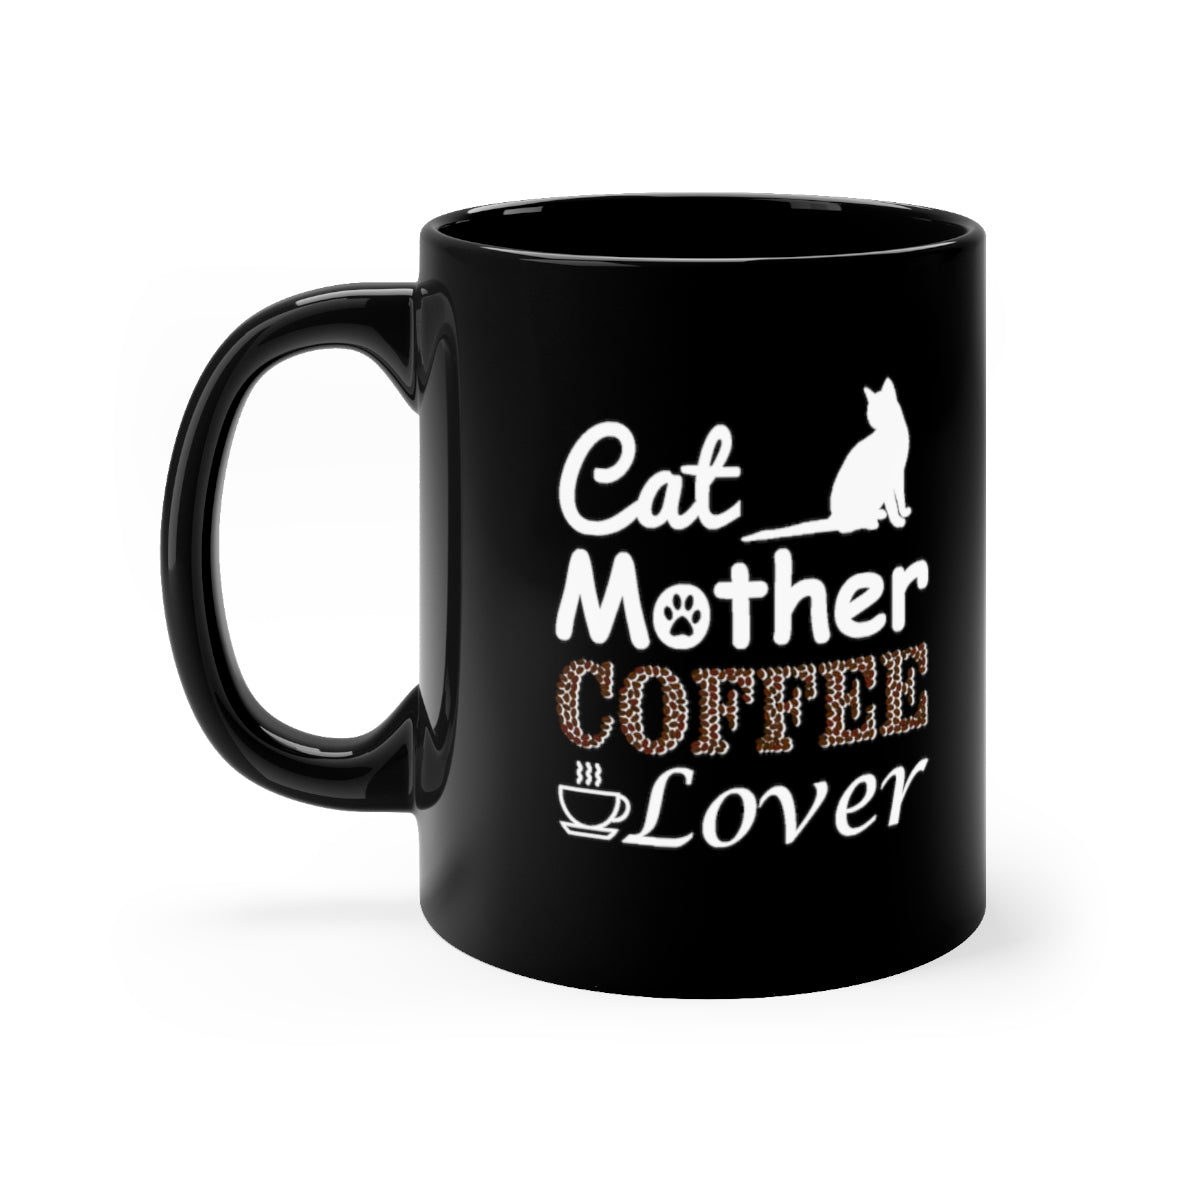 cat mother coffee lover black mug